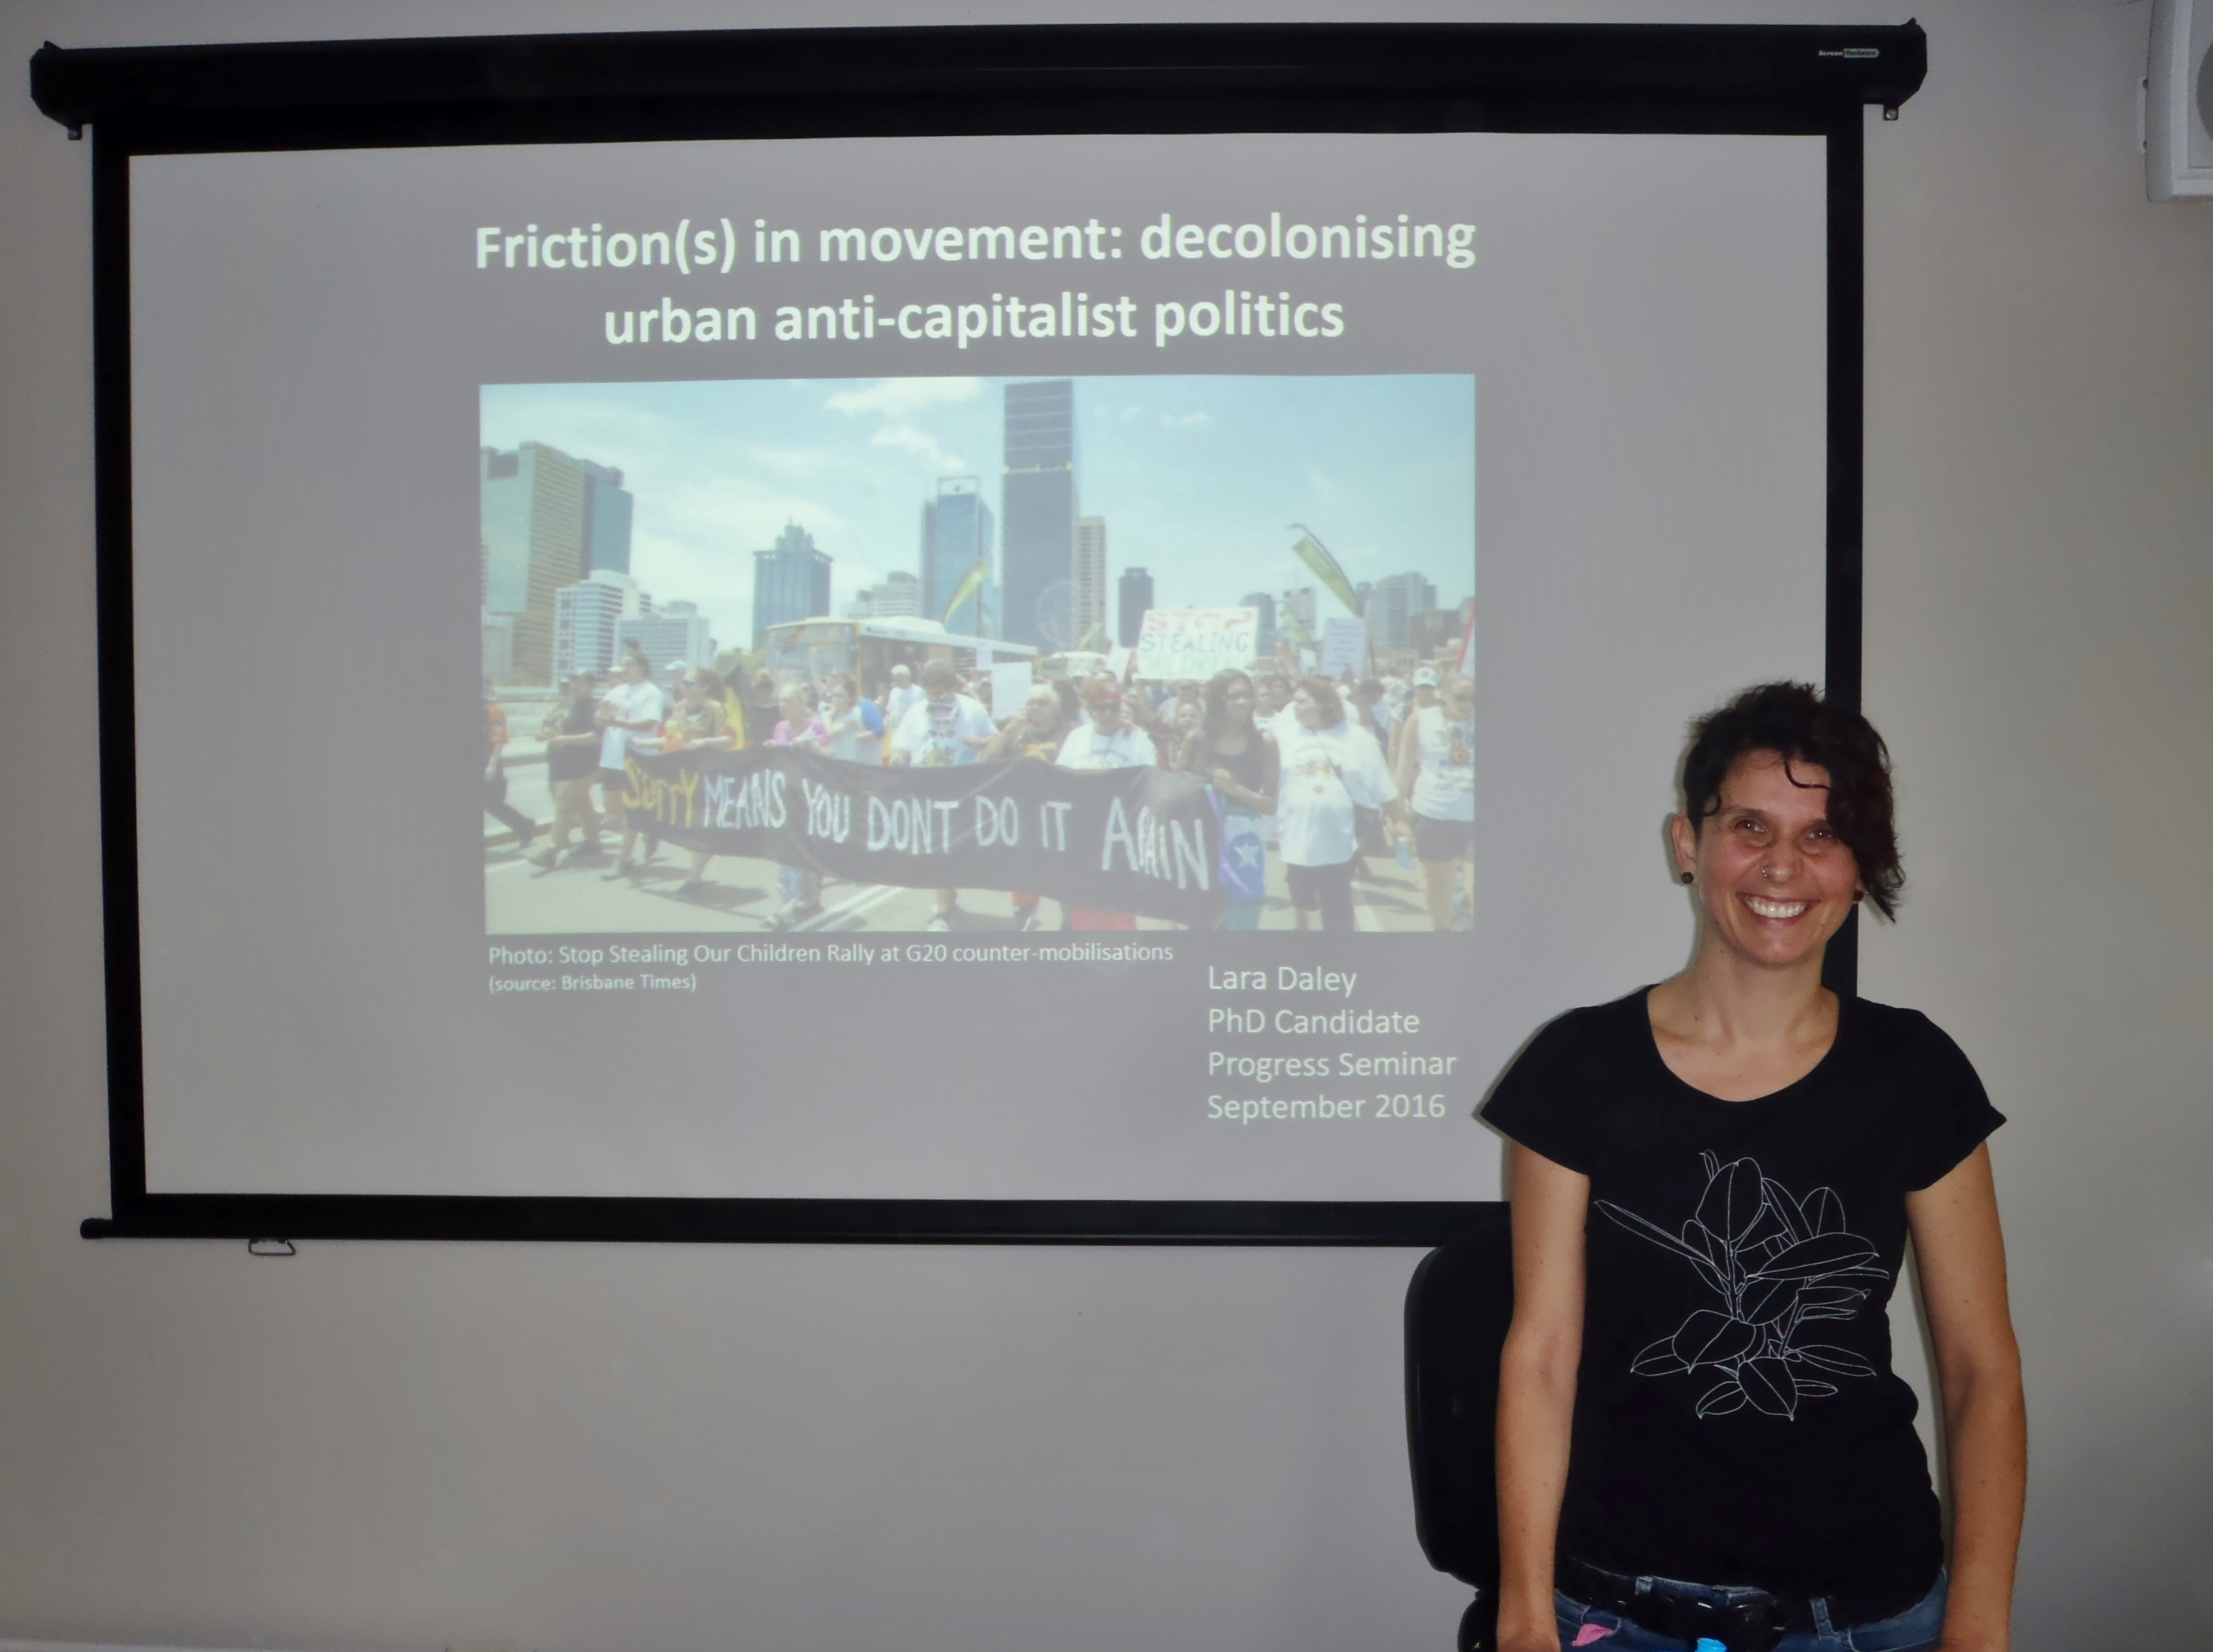 Friction(s) in movement: decolonising urban anti-capitalist politics